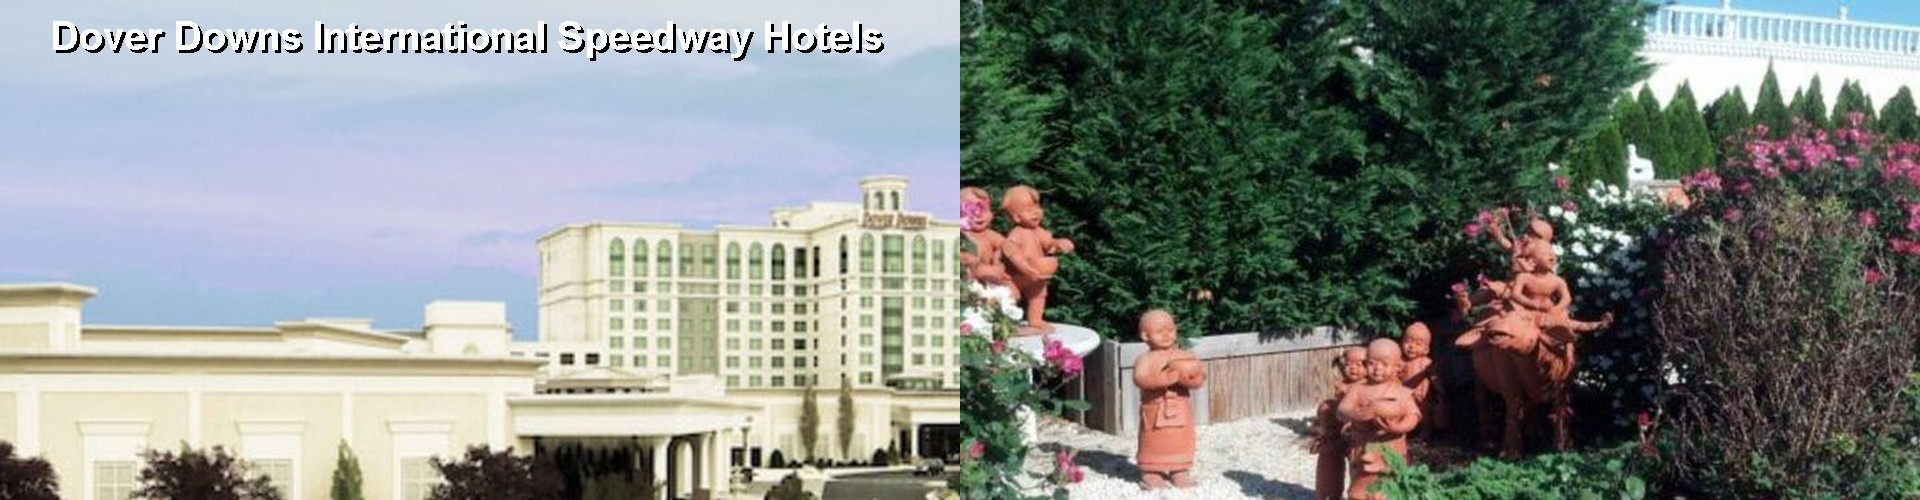 5 Best Hotels Near Dover Downs International Sdway